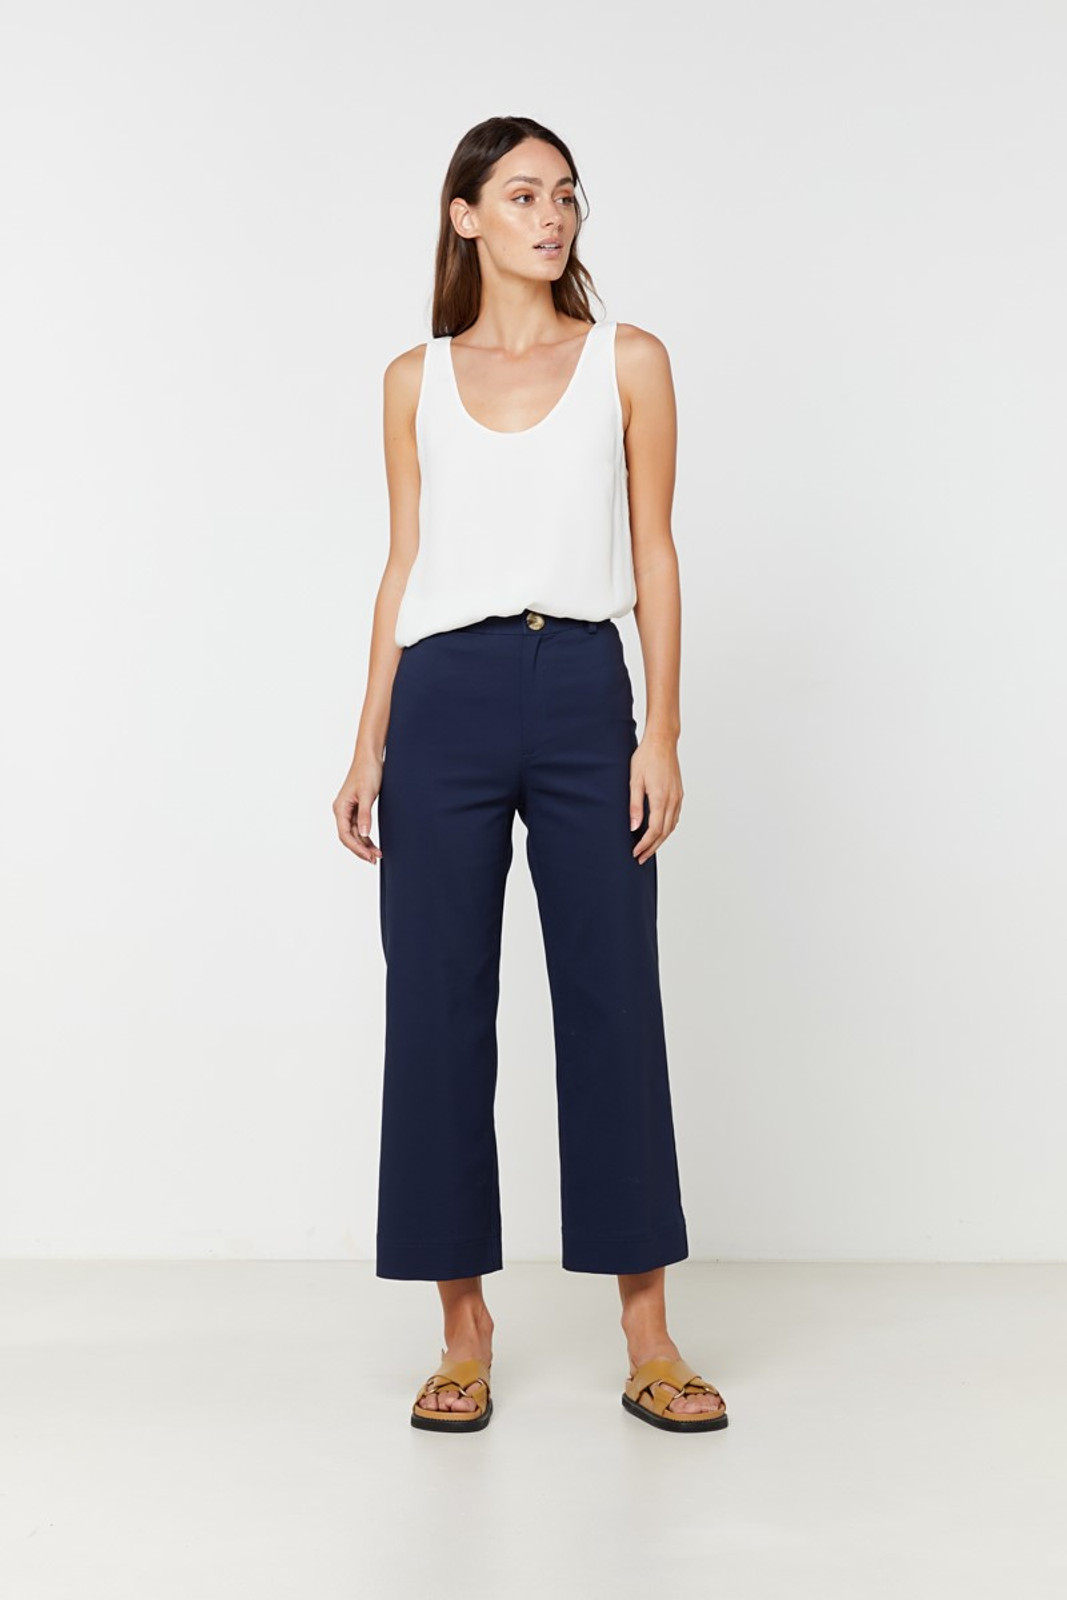 Elka Collective Ingrid Pant Navy  3